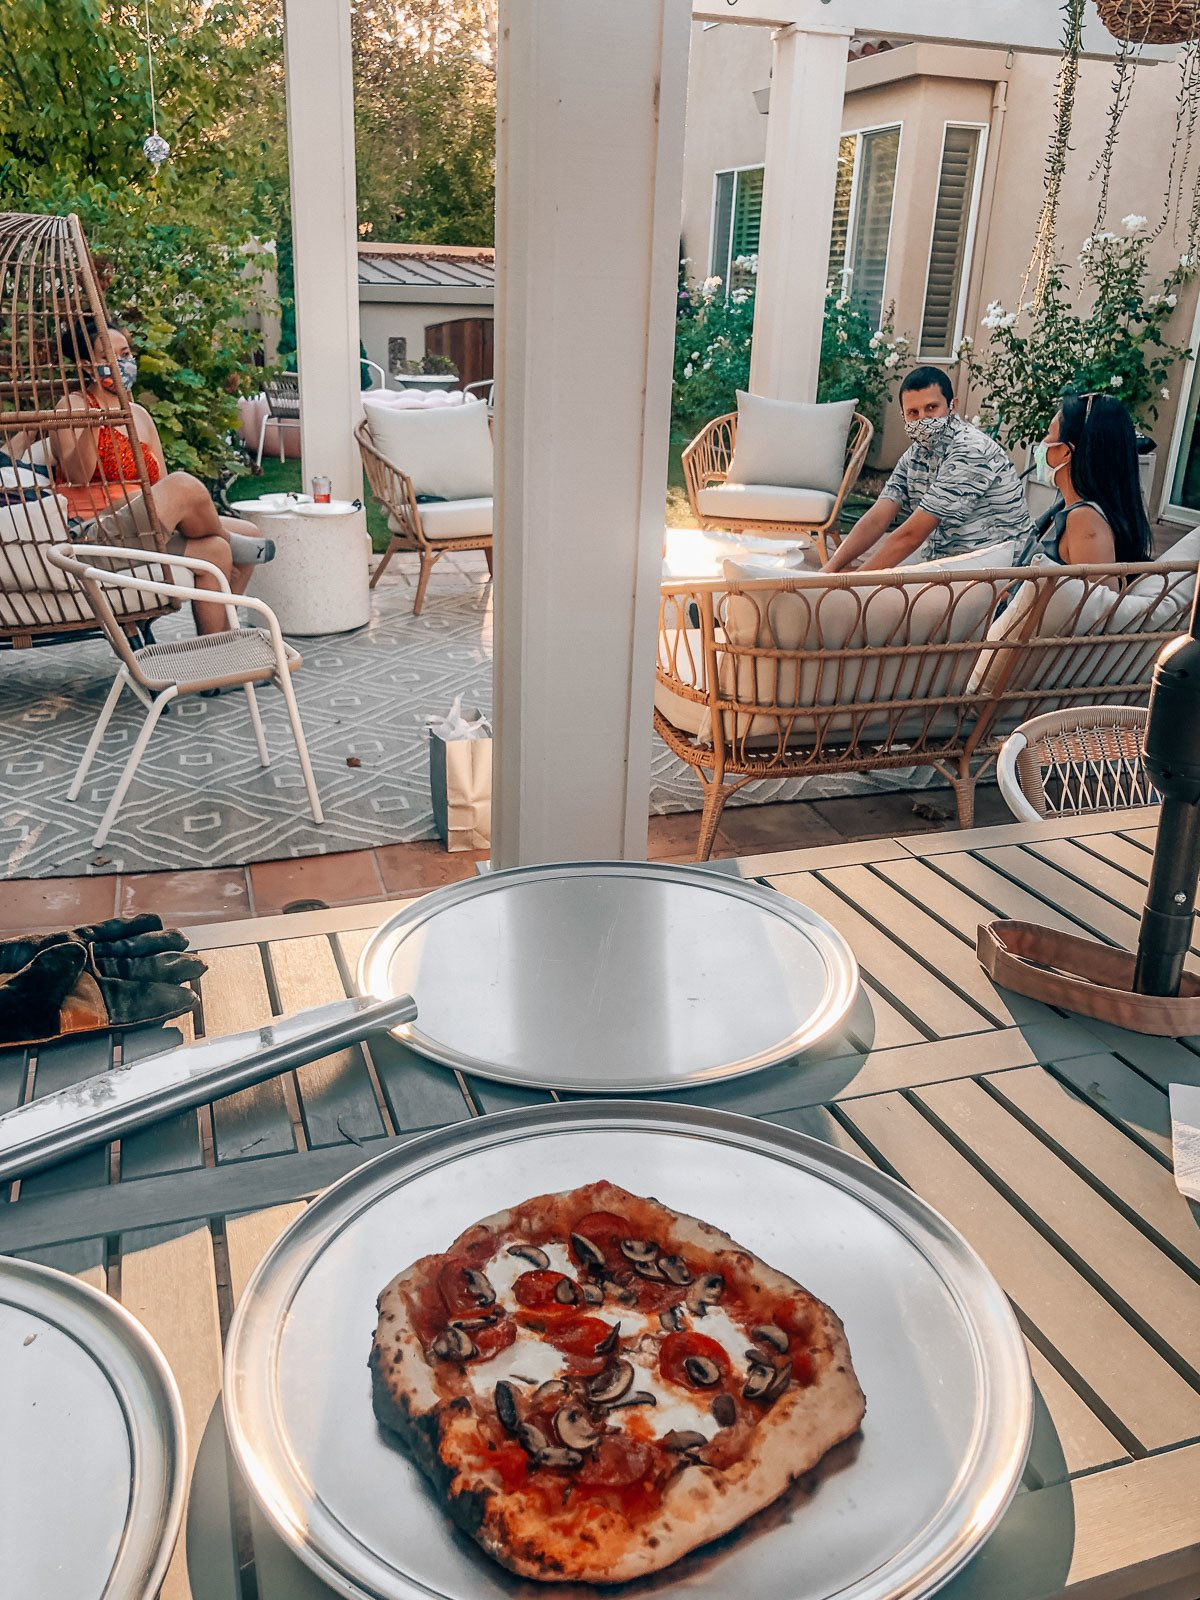 Ooni Pro review and pizza recipes, by lifestyle blogger What The Fab